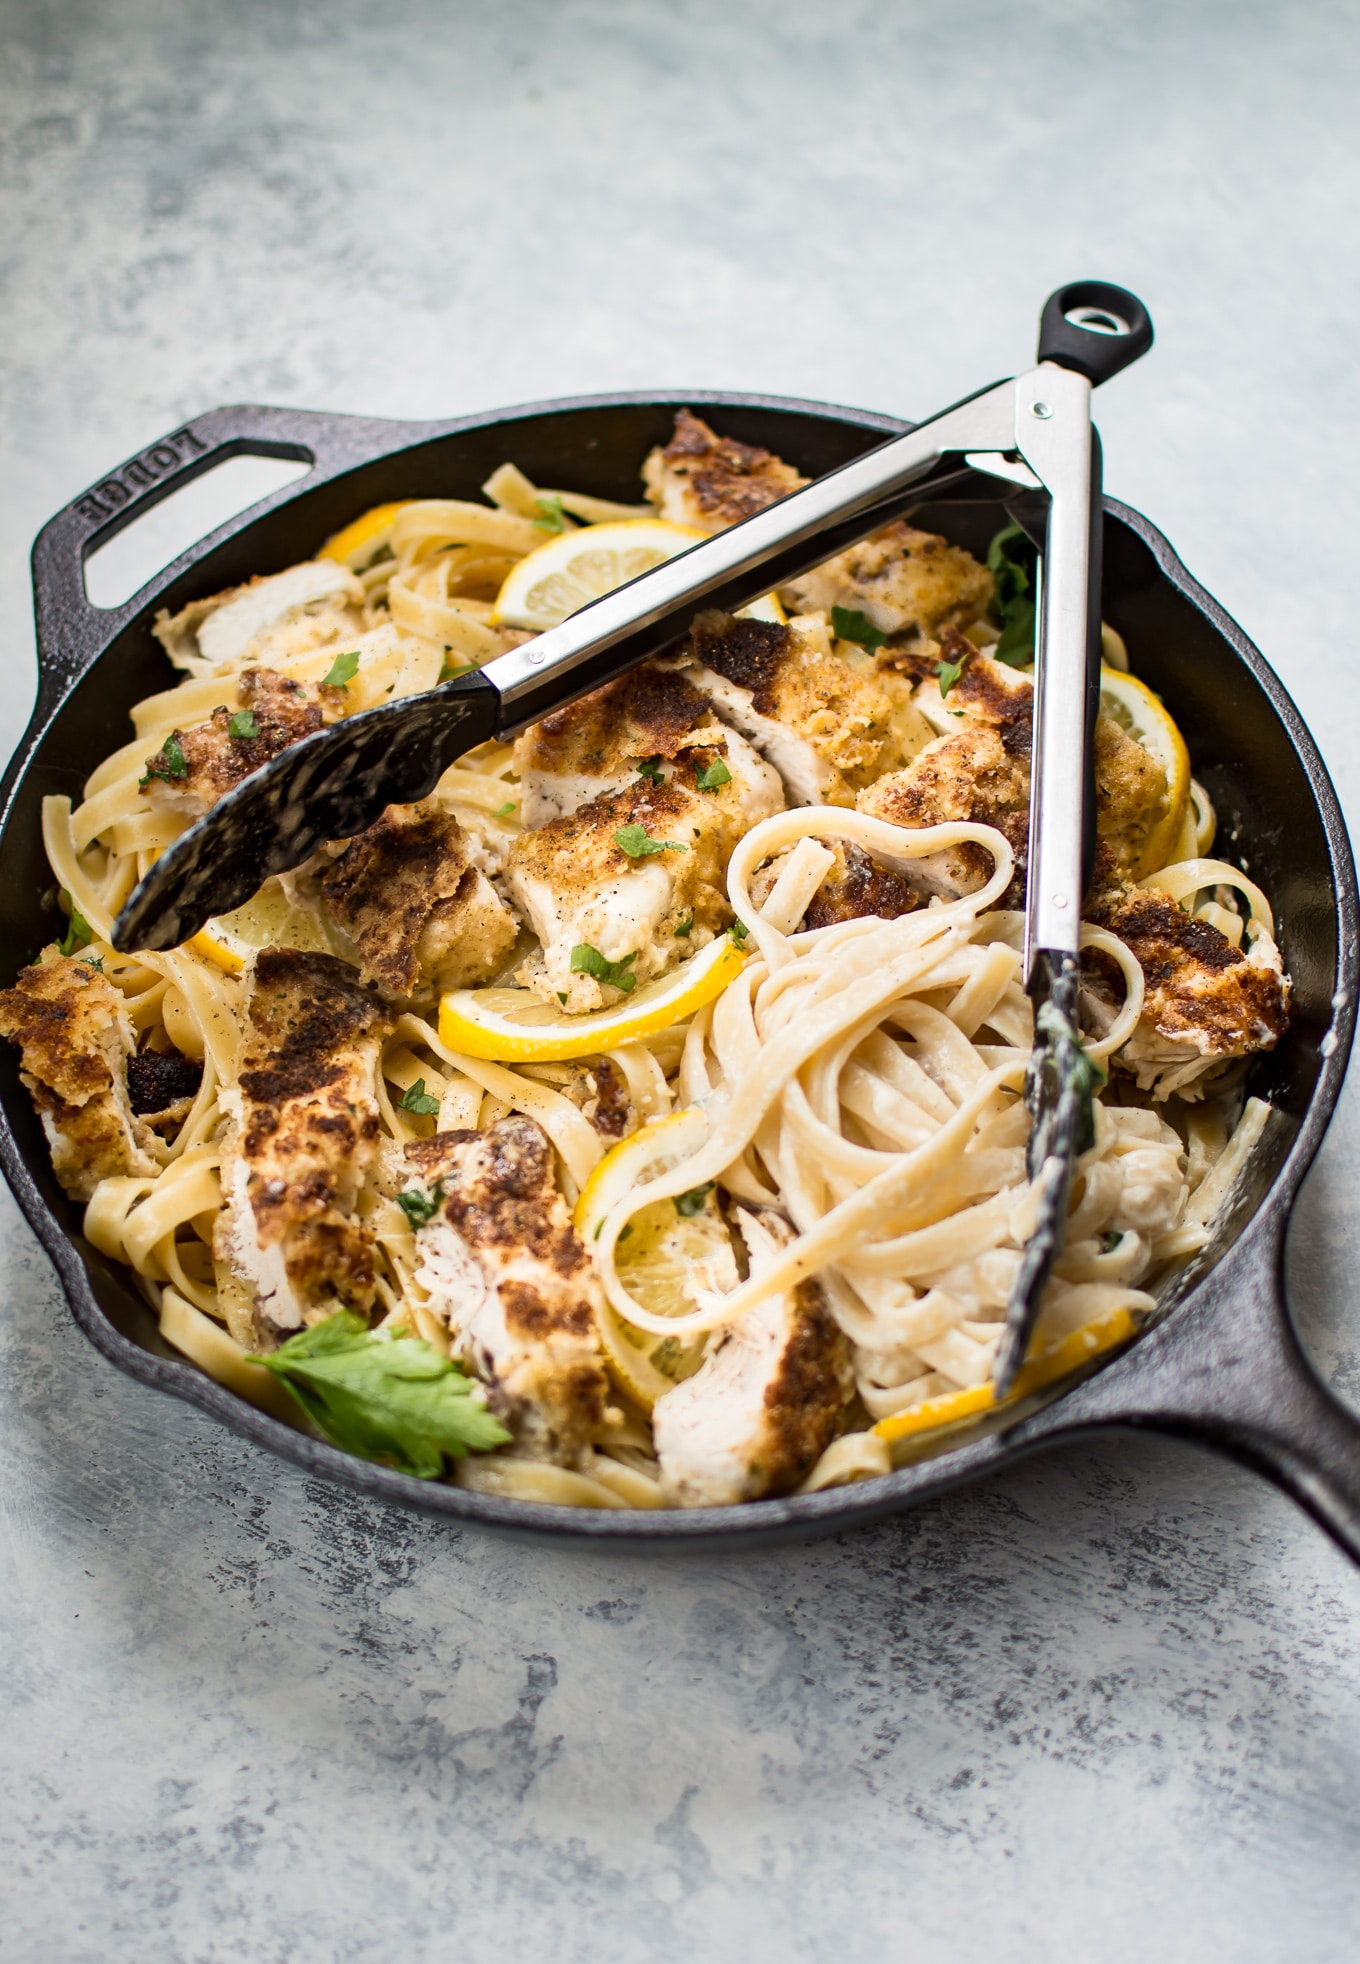 This lemon parmesan chicken Alfredo recipe is a delicious and decadent way to enjoy pasta! The sauce is irresistibly creamy with plenty of lemon and garlic! The tender breaded chicken adds another layer of comfort and flavor to this easy pasta dish.